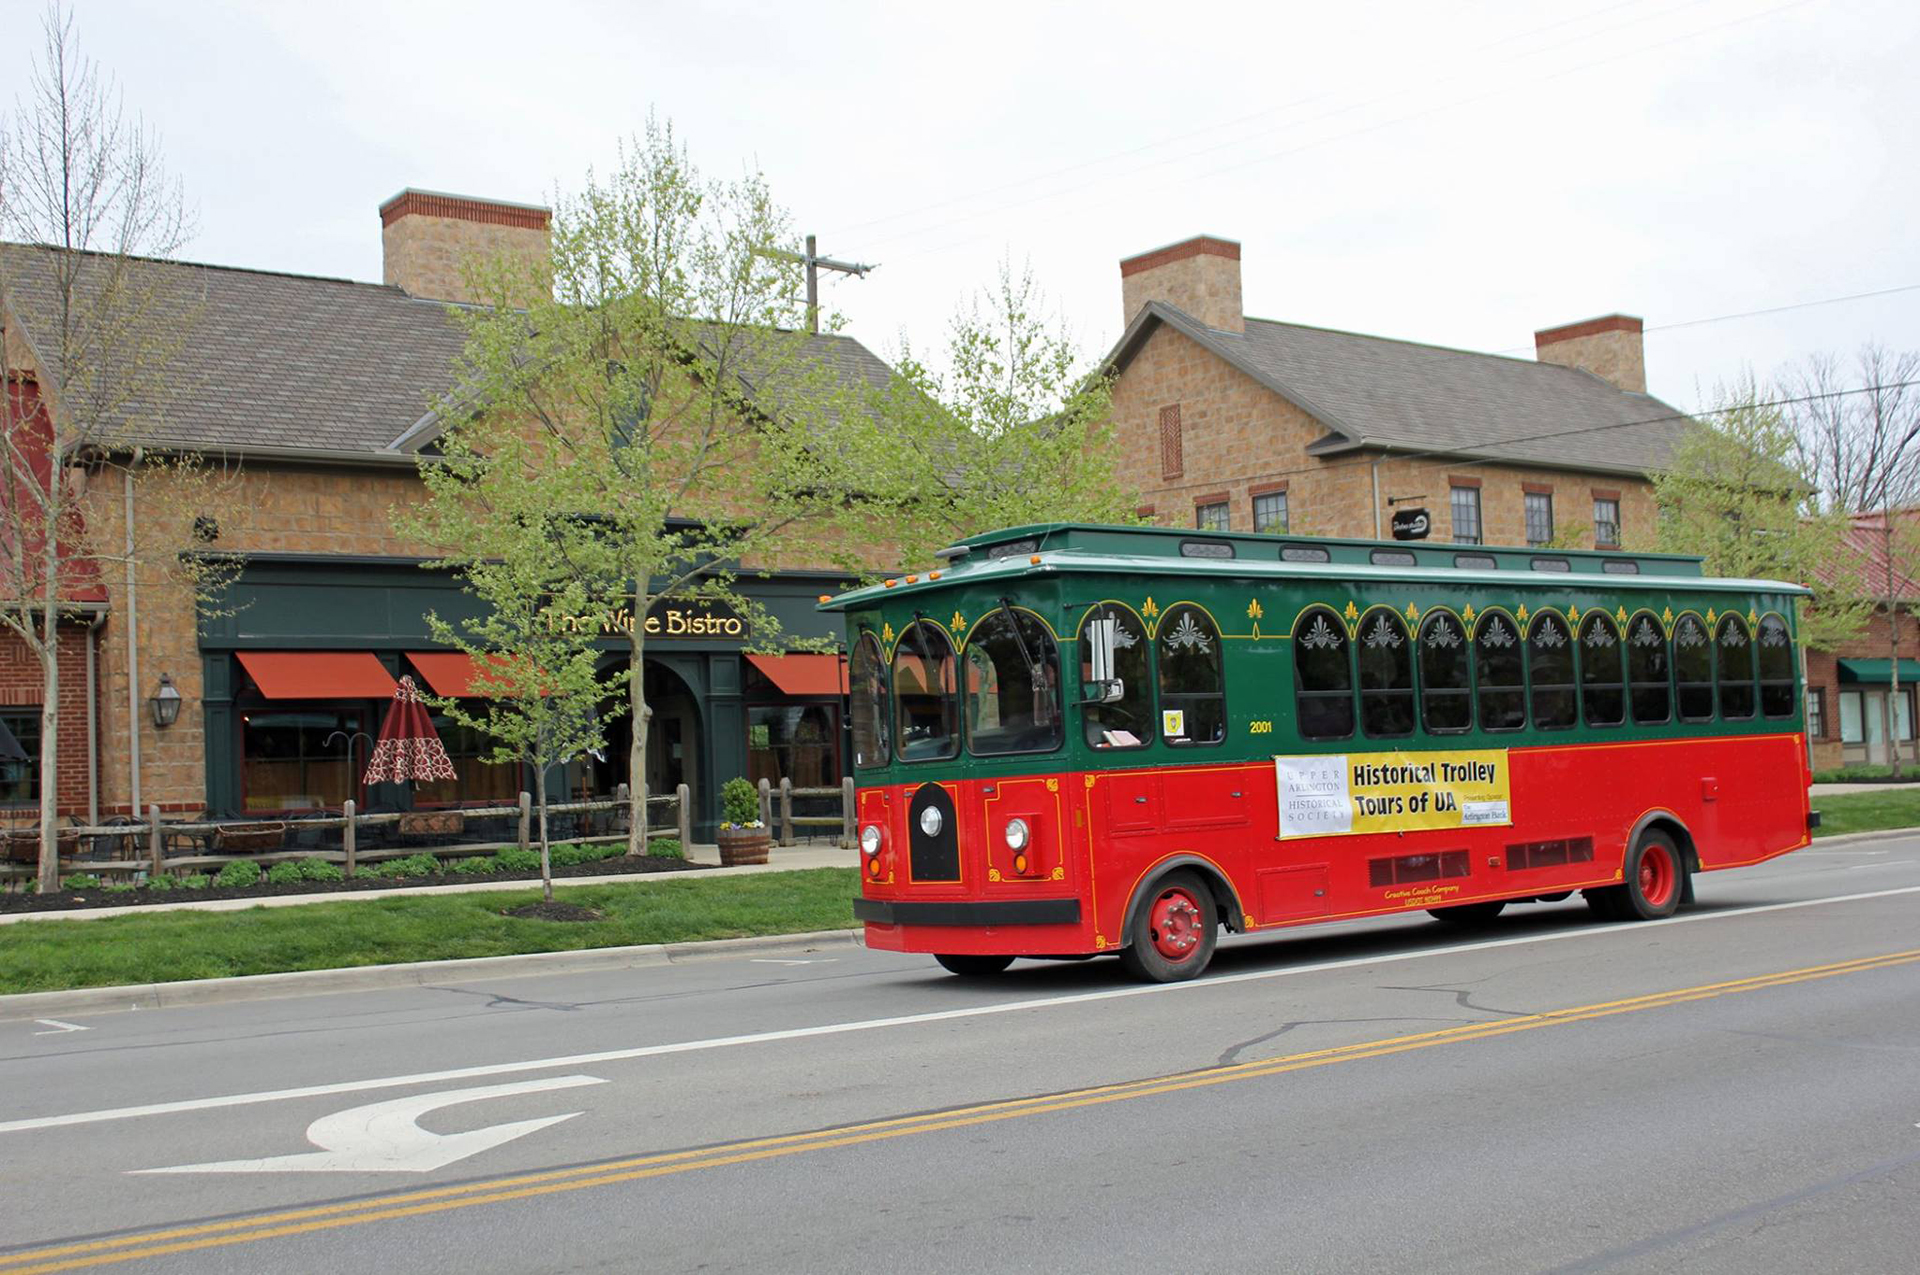 Historical Society Trolley Tour